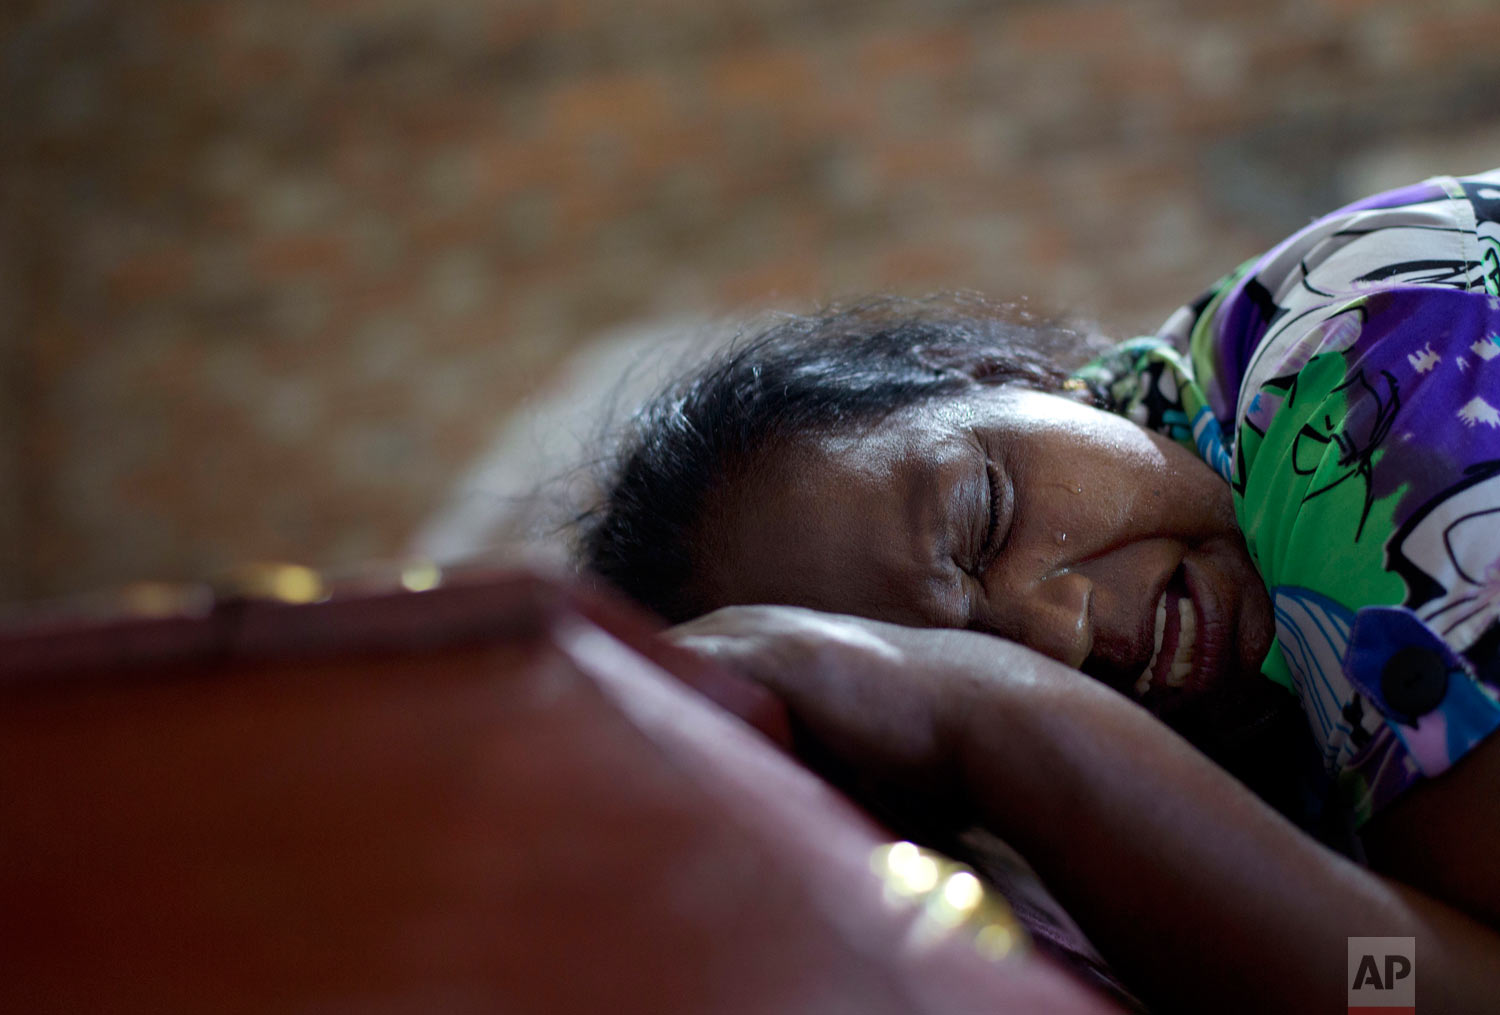 Lalitha weeps on the coffin with the remains of 12-year old niece, Sneha Savindi, who was a victim of Easter Sunday bombing at St. Sebastian Church in Negombo, Sri Lanka, April 22, 2019. (AP Photo/Gemunu Amarasinghe)